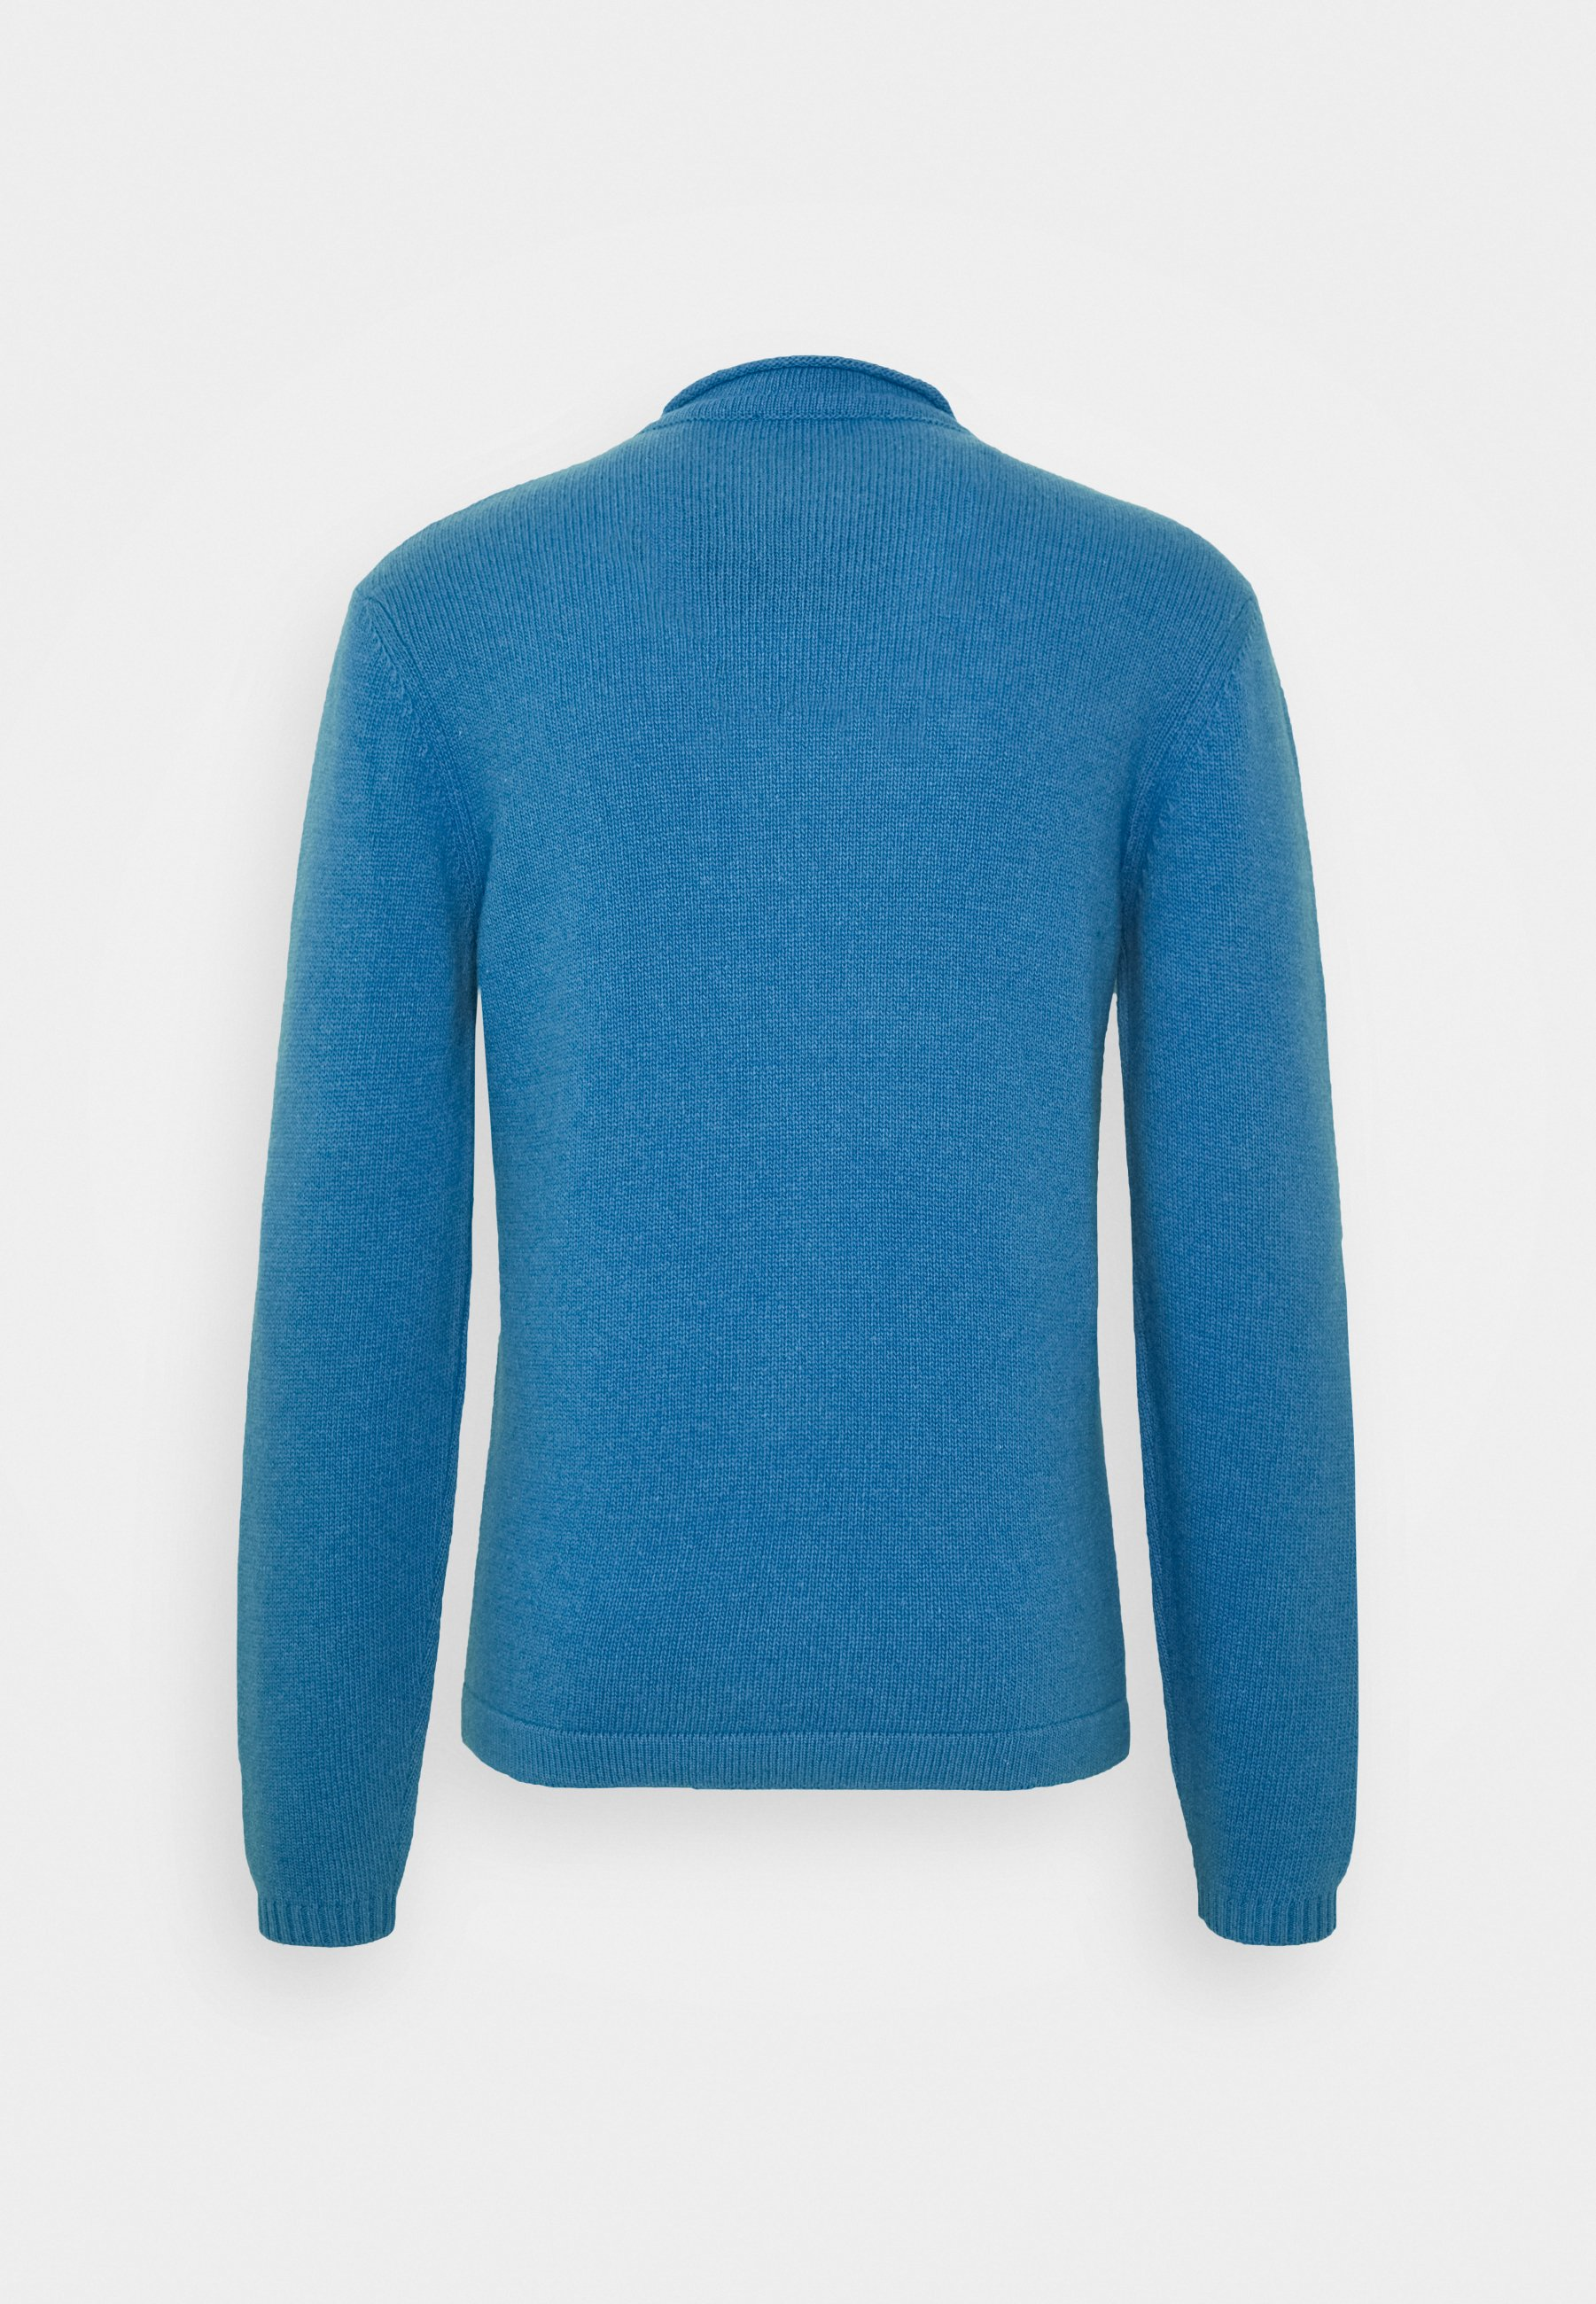 Wool & Co Pullover - azur